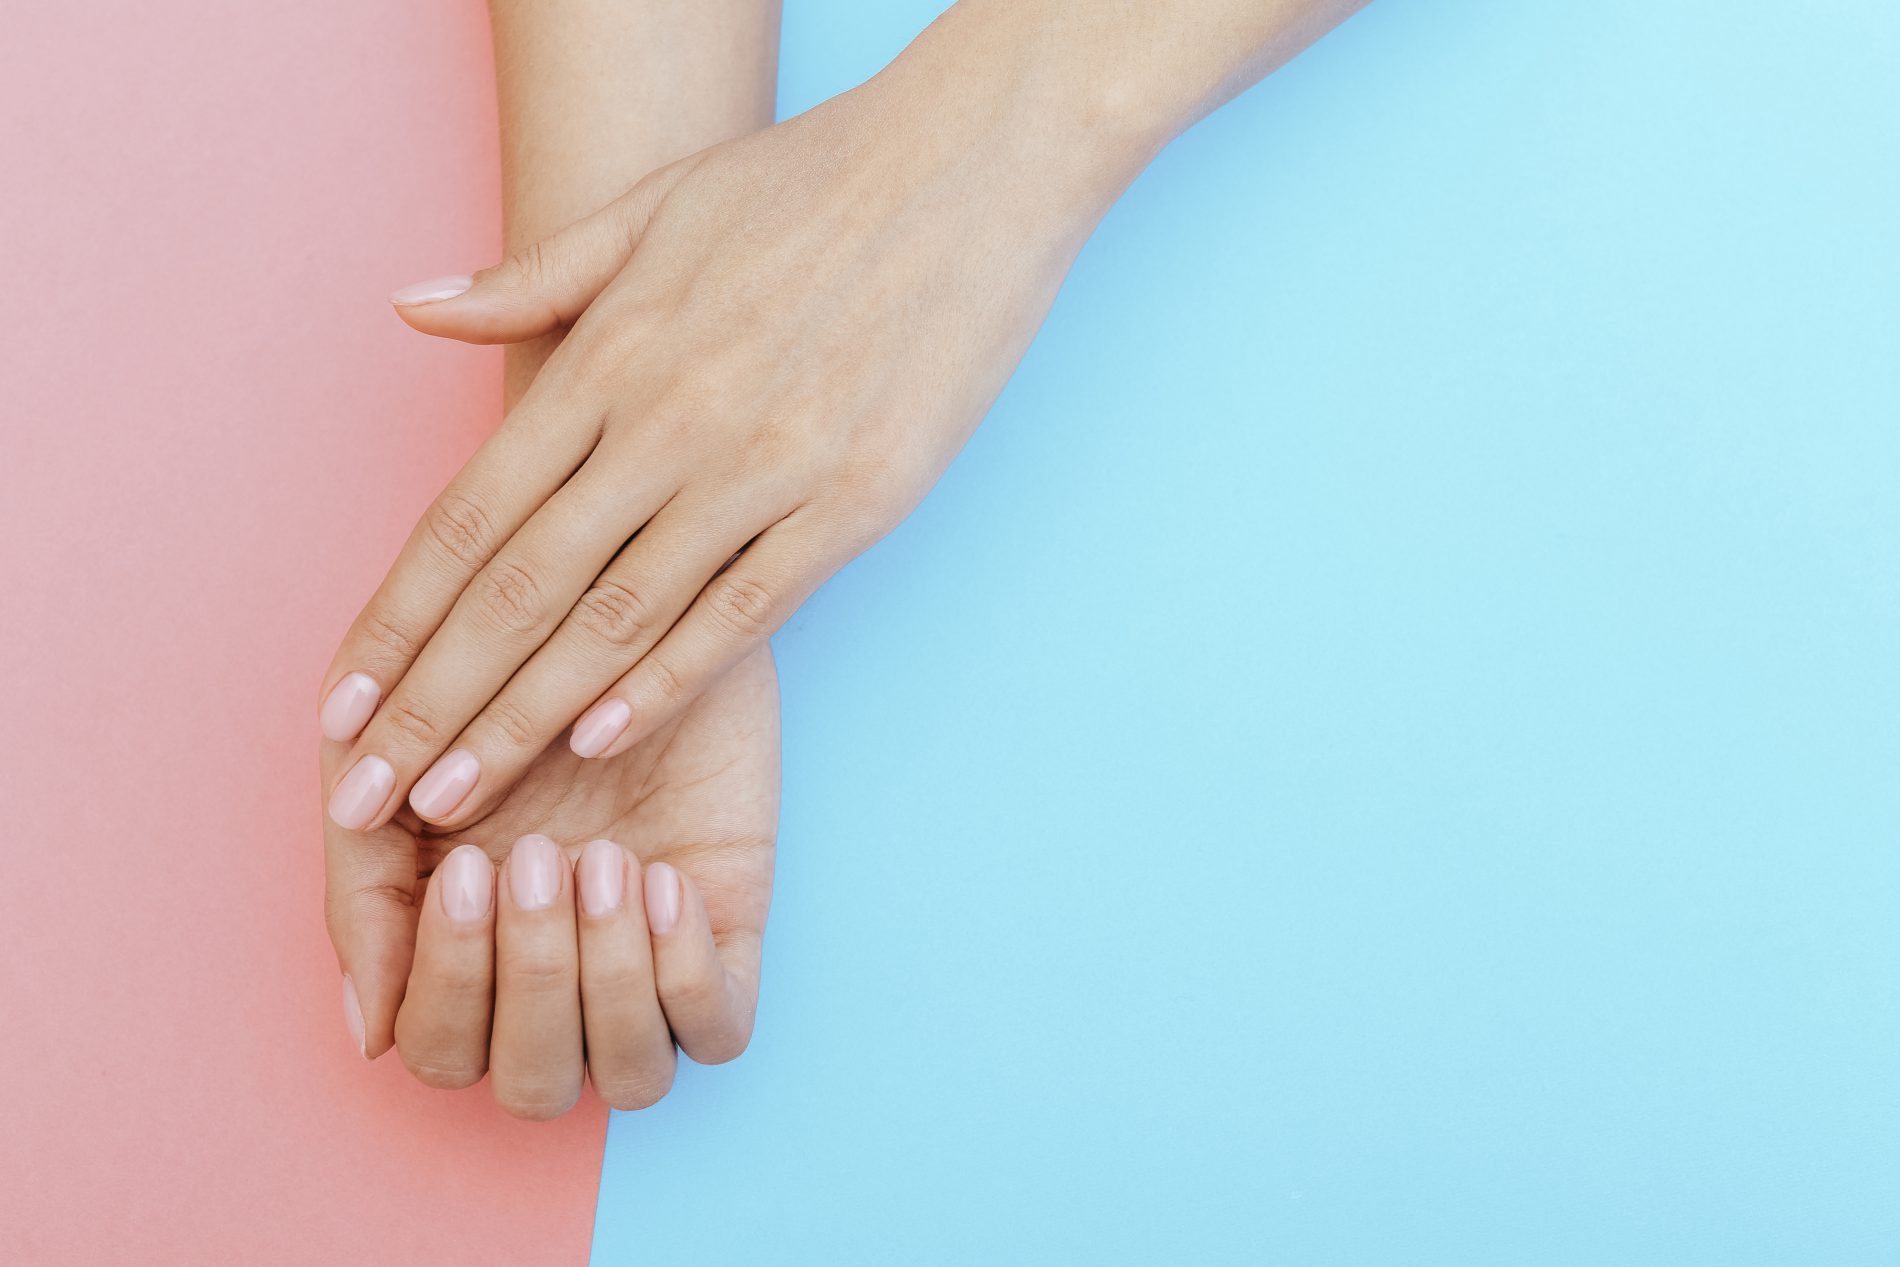 Manicured nails with light pink acrylic nail polish